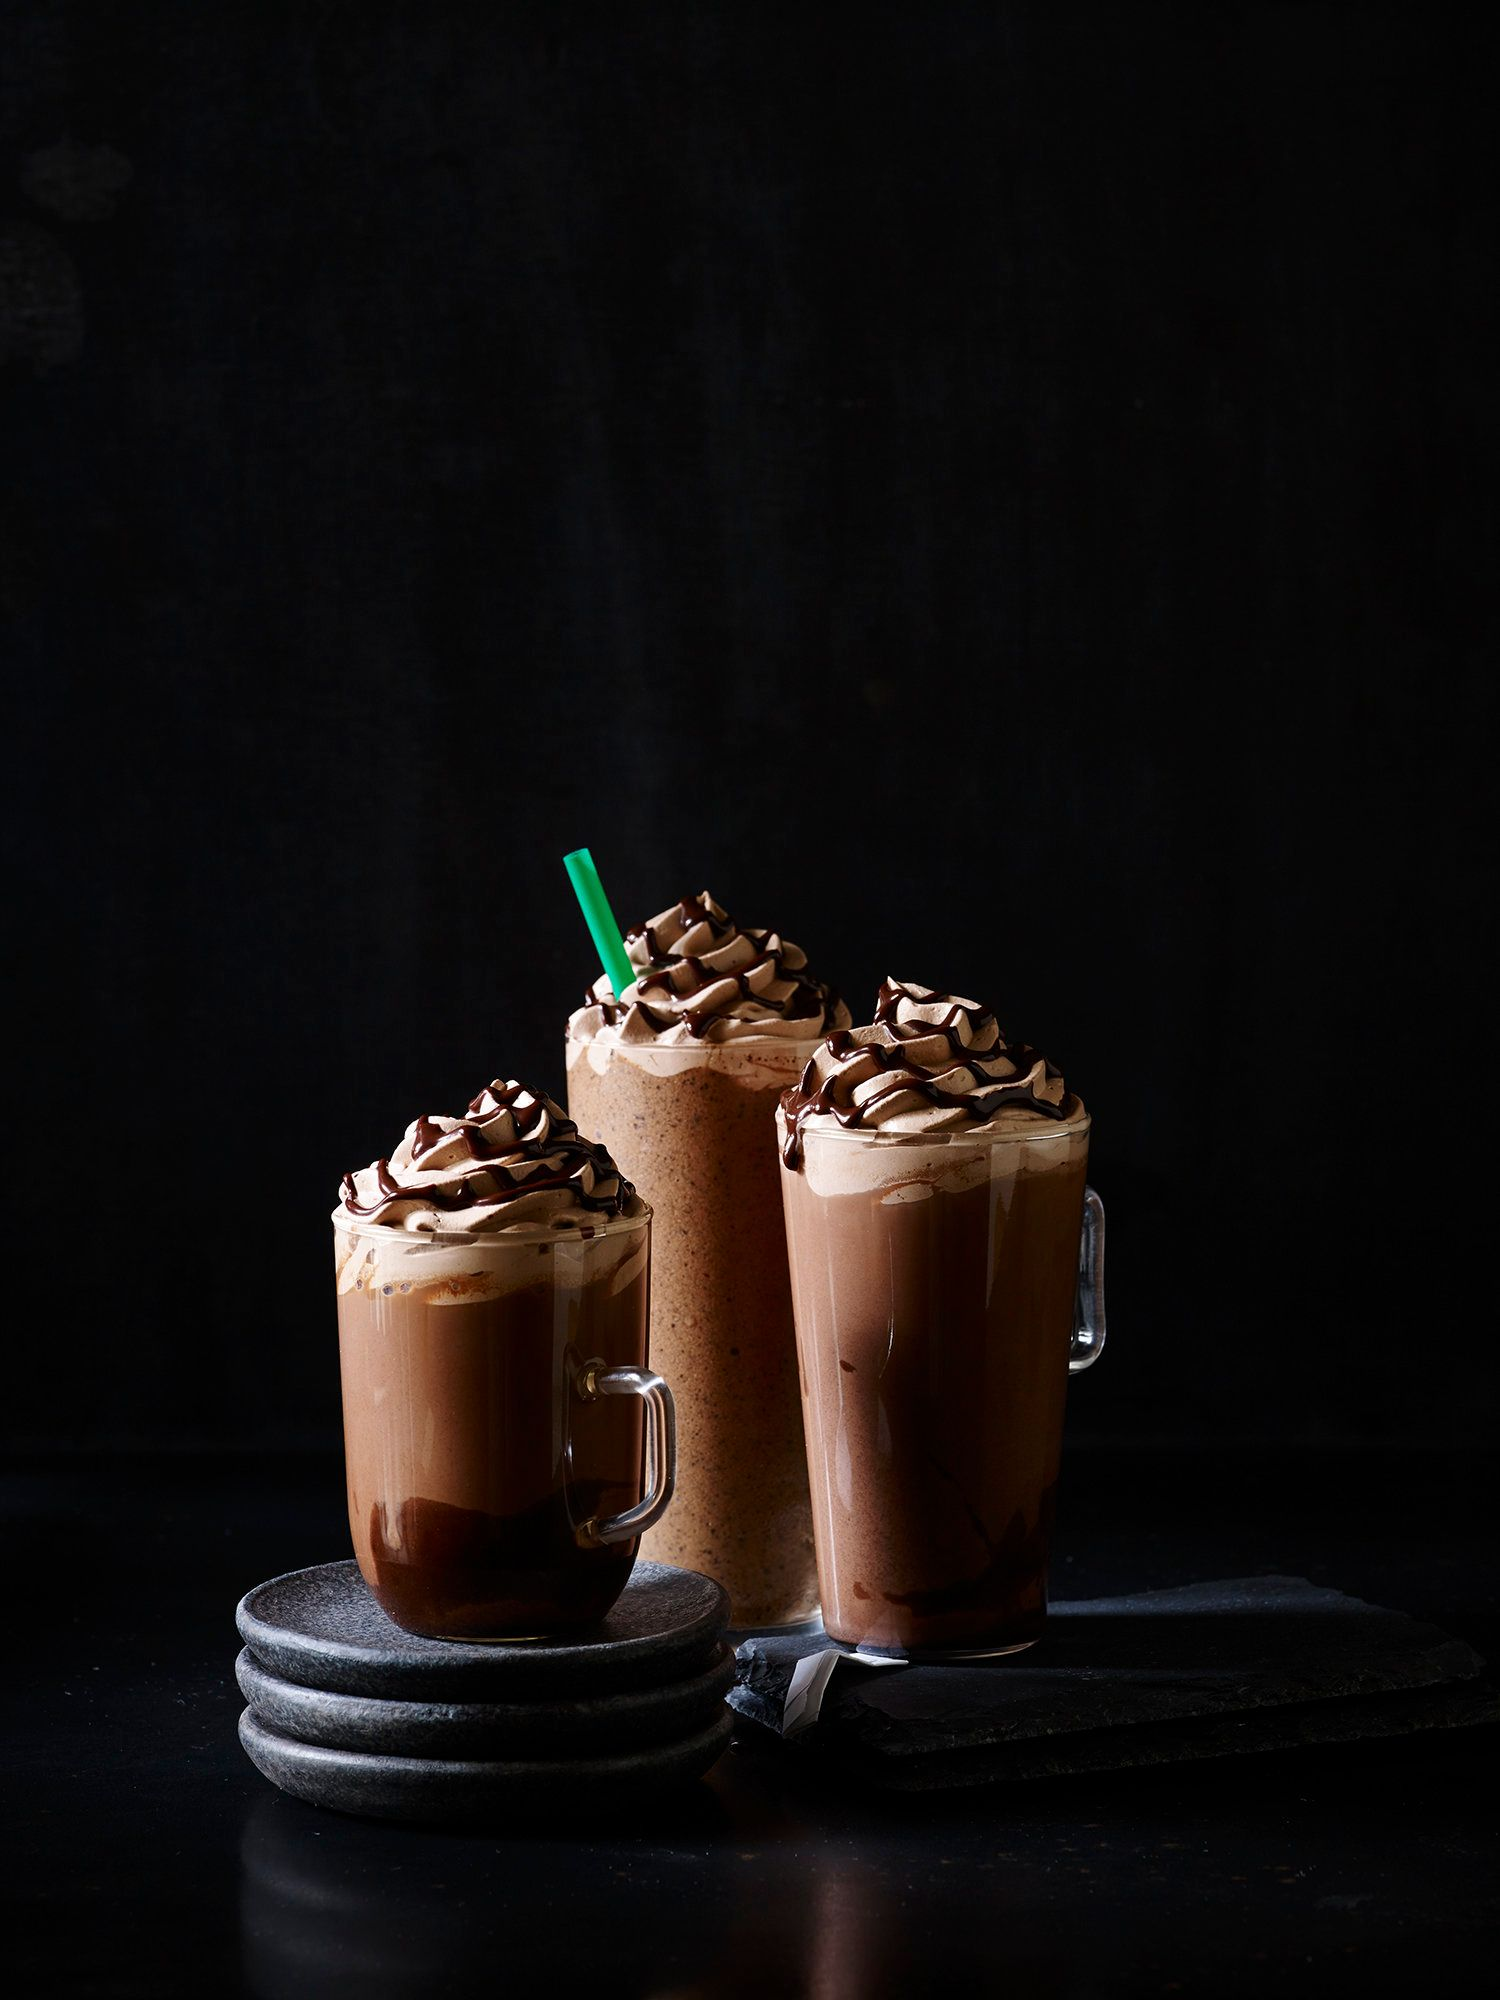 Starbucks Molten Chocolate Drinks Are Back In Time For